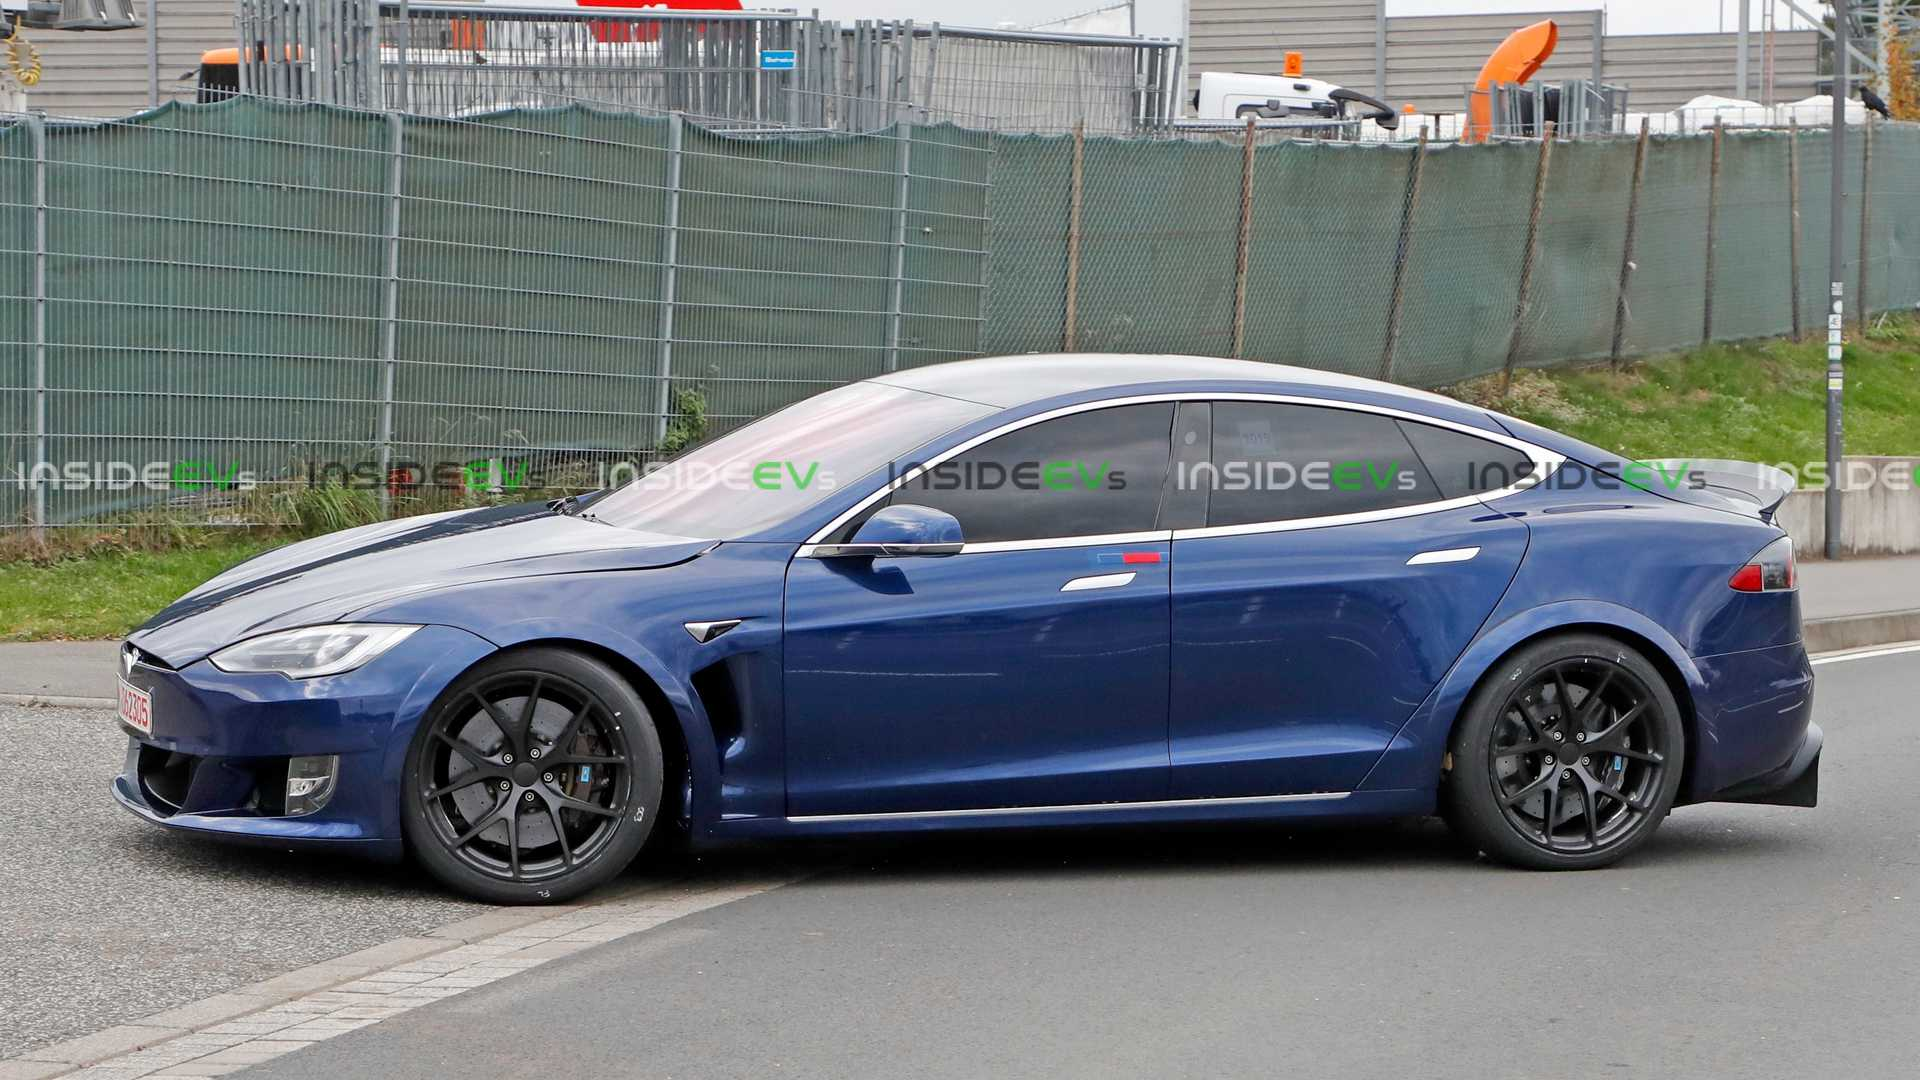 Tesla Model S Plaid Versus Porsche Taycan Matchup Expected Next Week